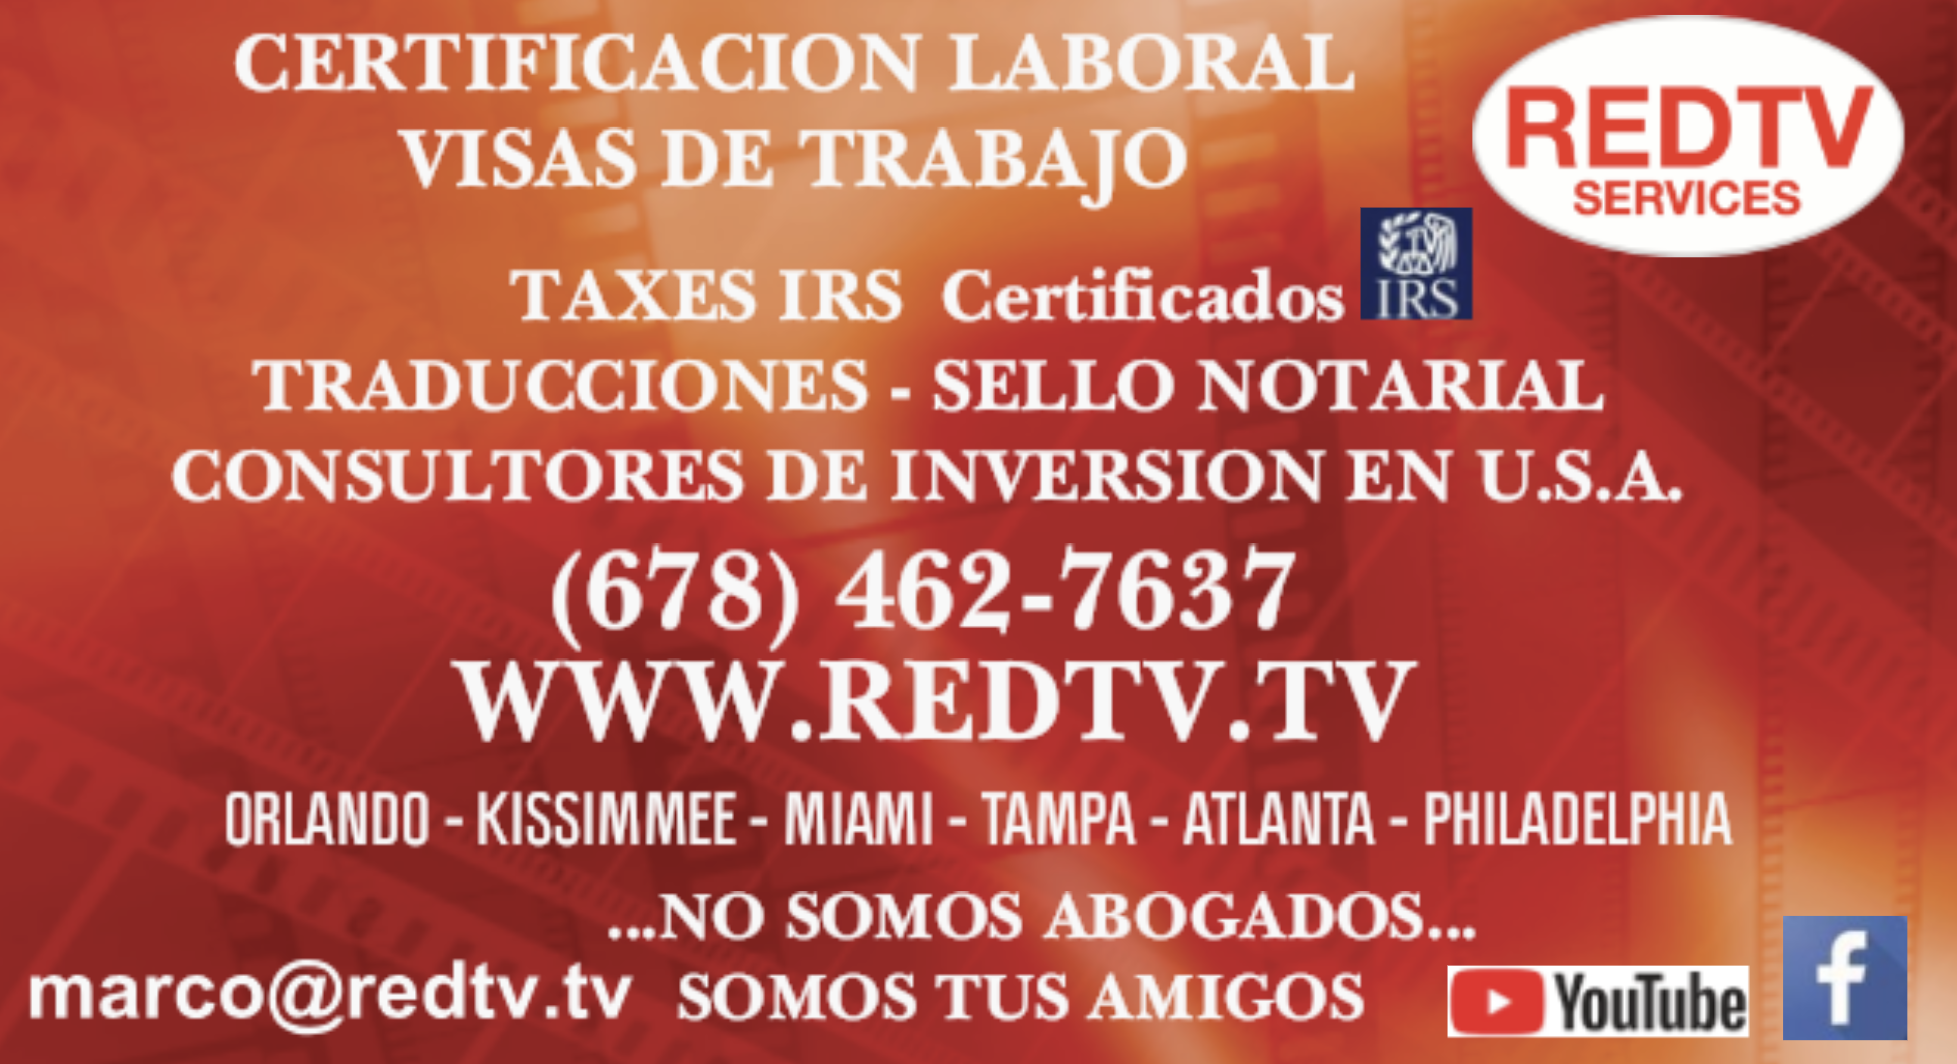 REDTV SERVICES